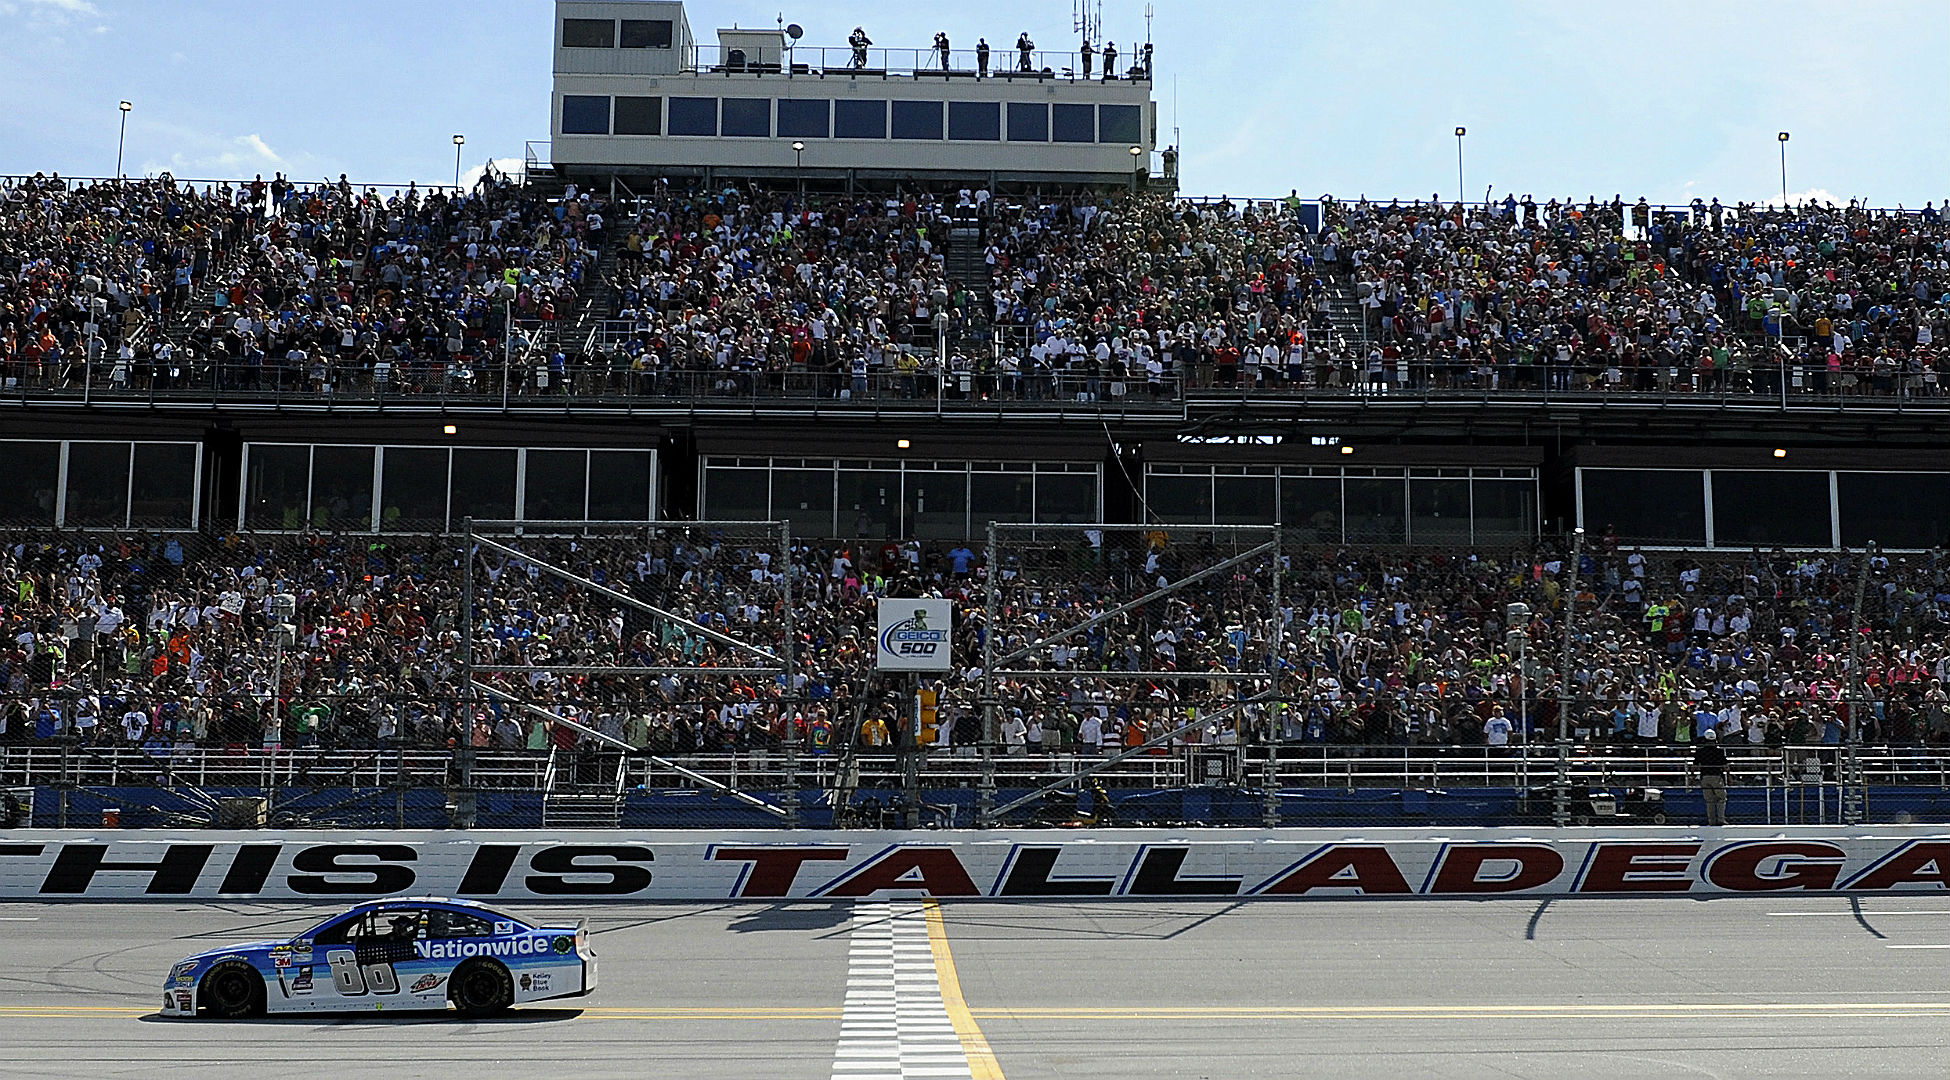 NASCAR odds and betting analysis – Dale Earnhardt Jr. favored at Talladega